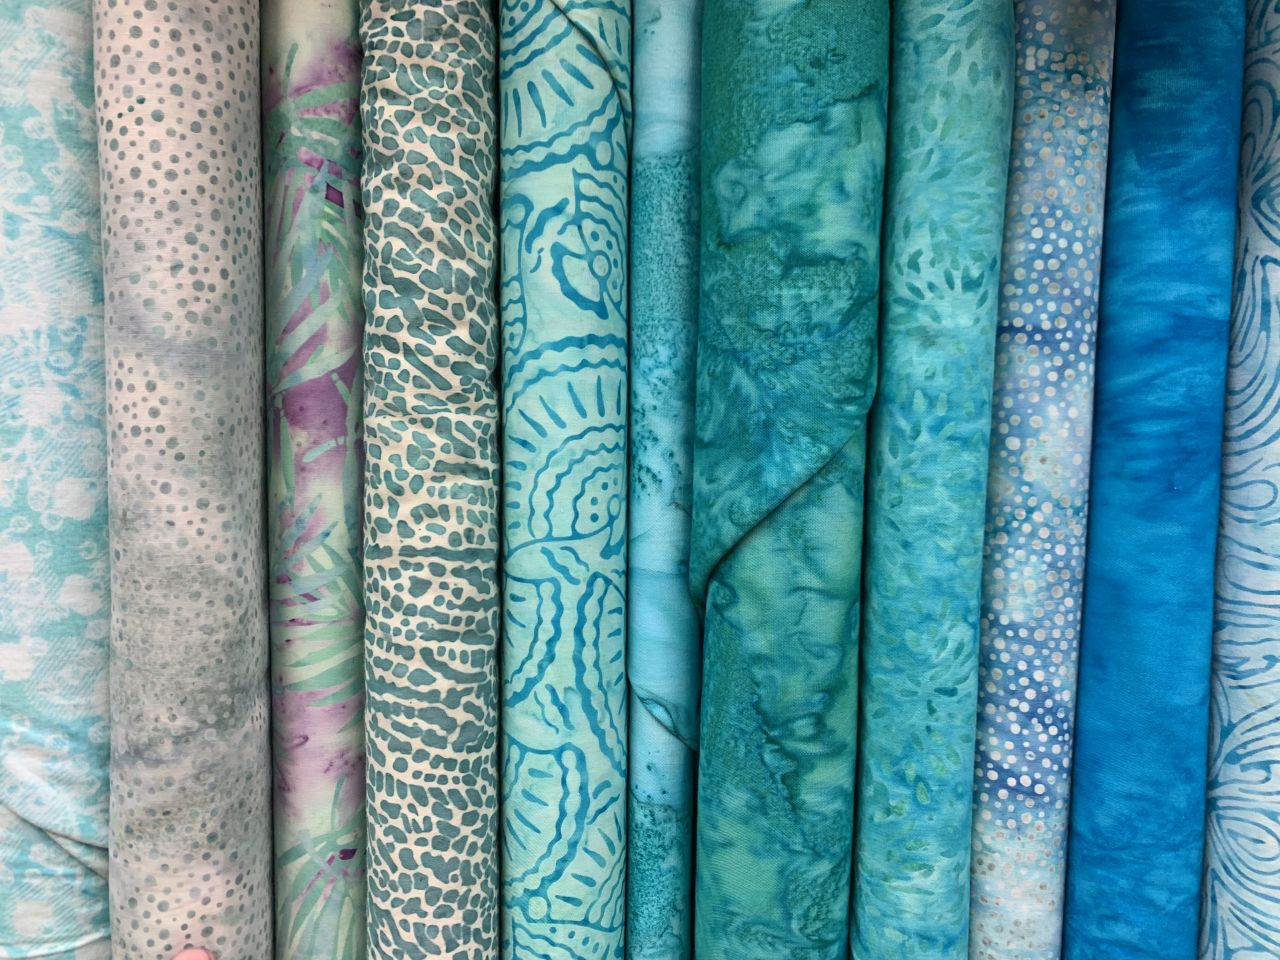 Fabric Samples in Cool Colors